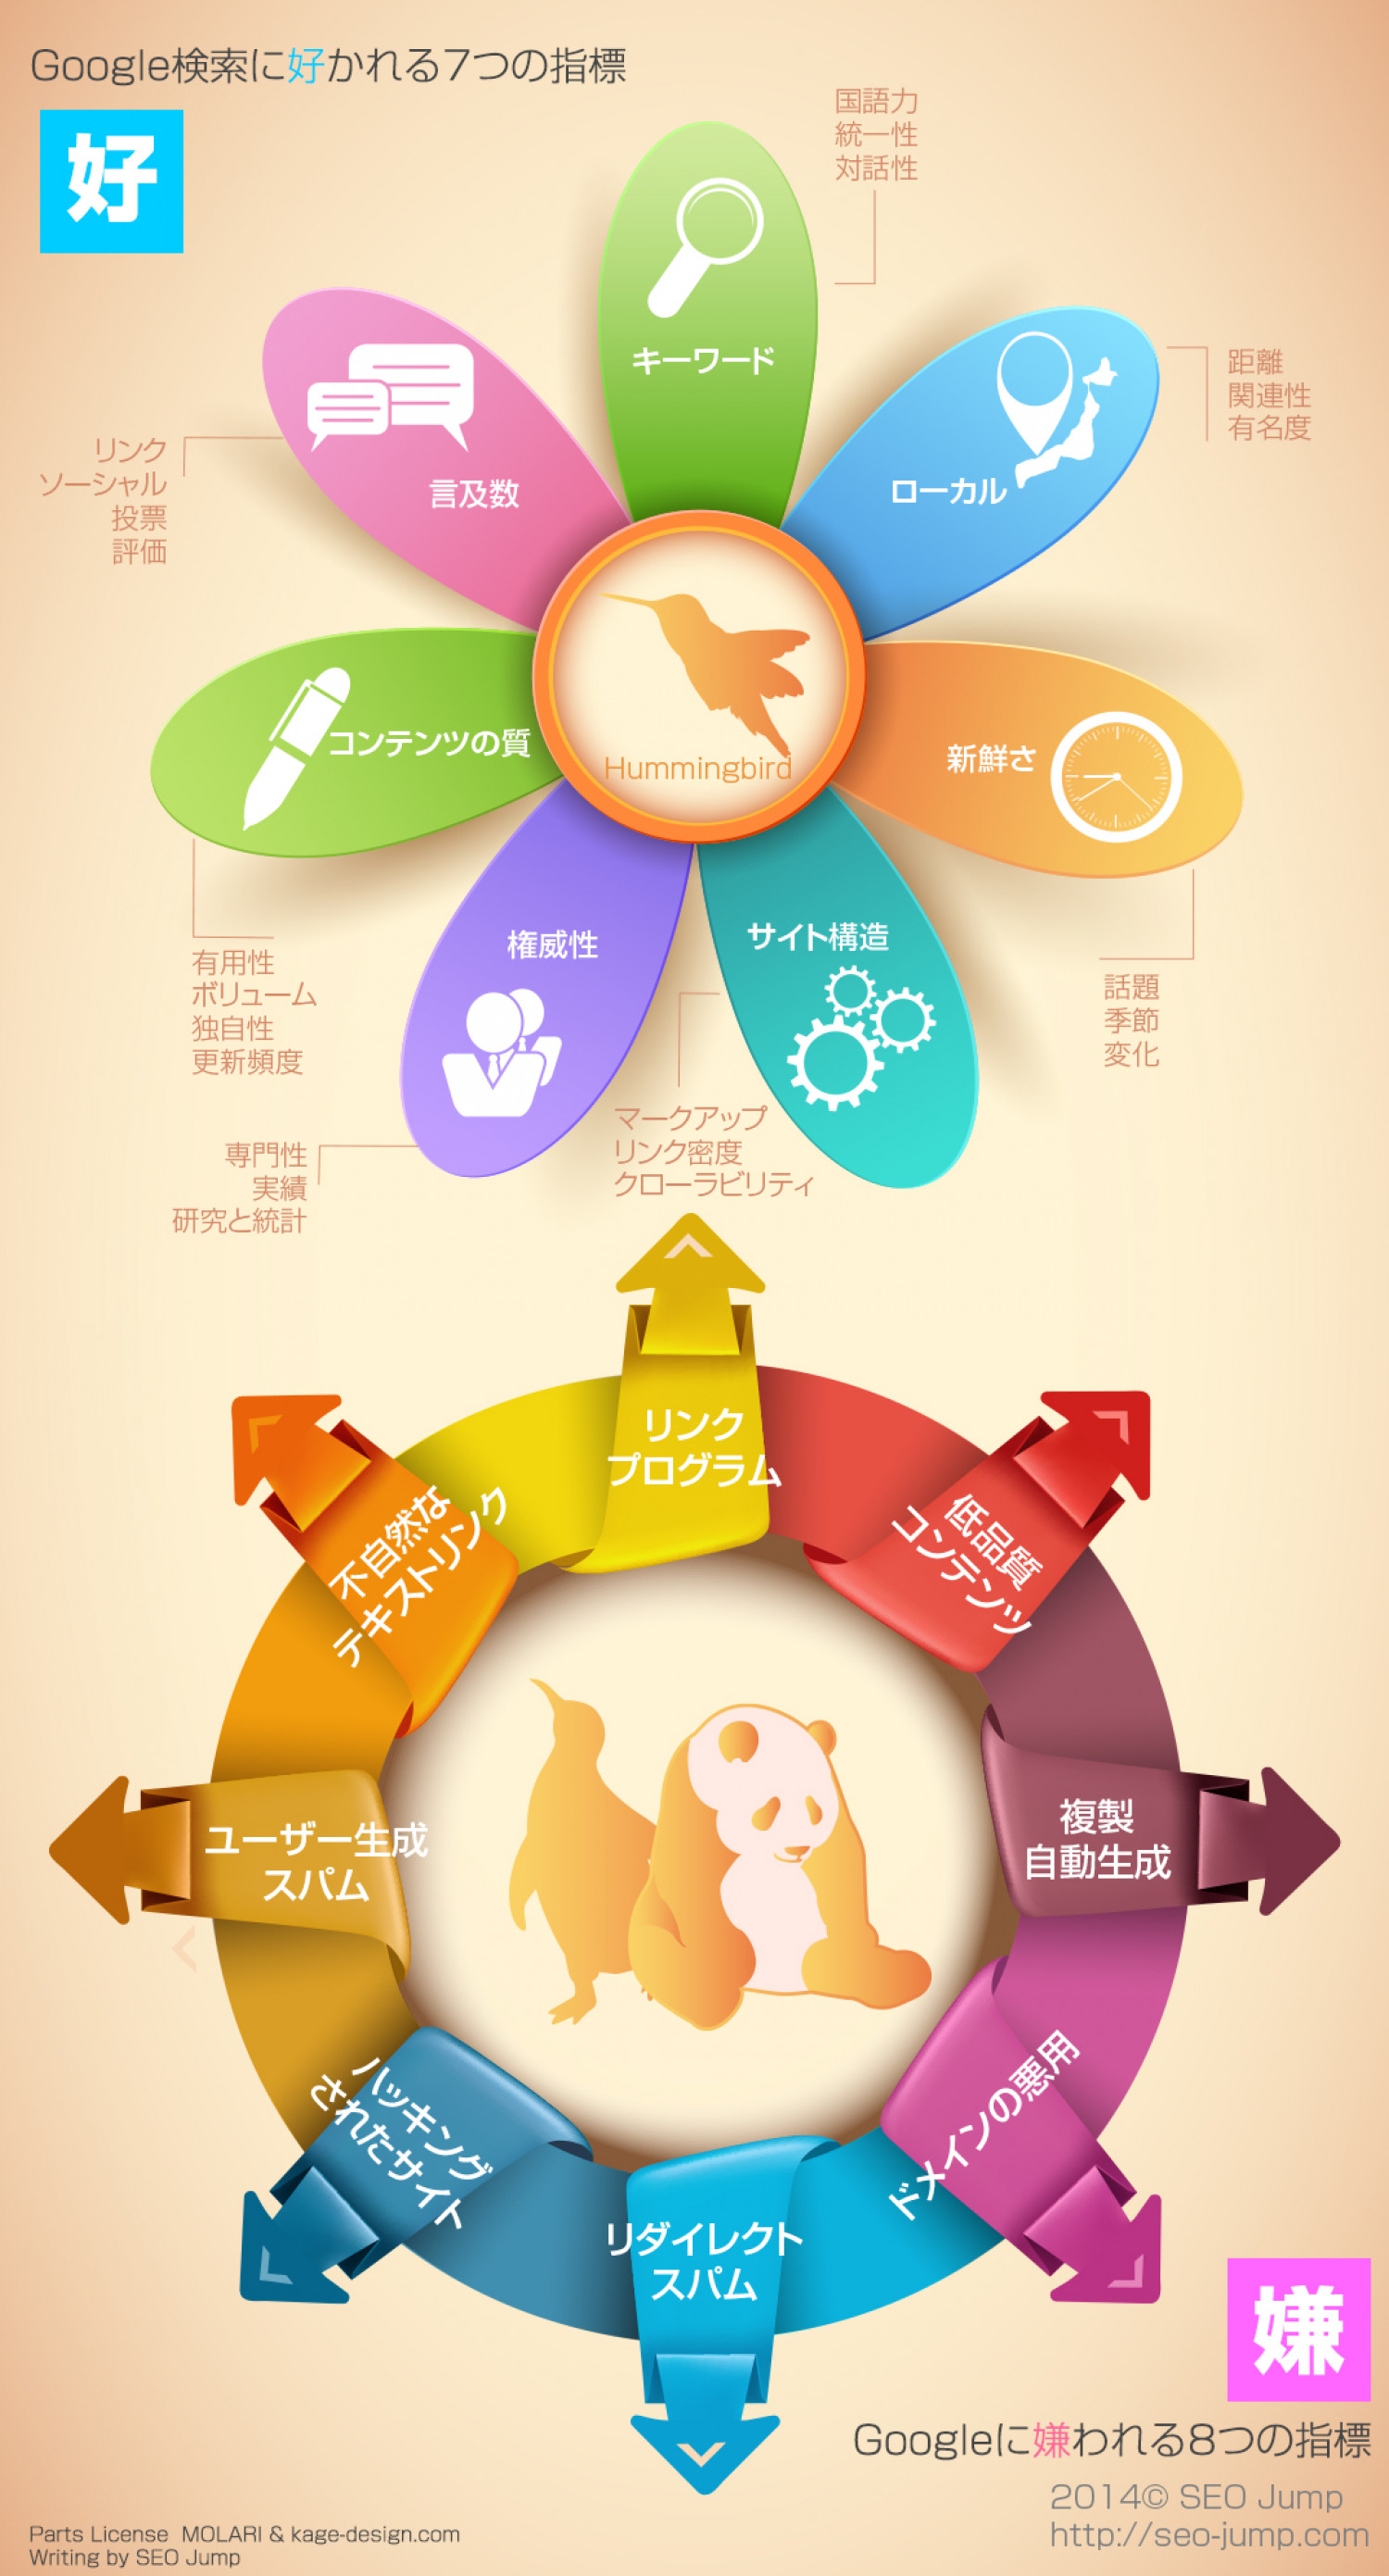 SEO 2014 Google Search Ranking Factor Infographic